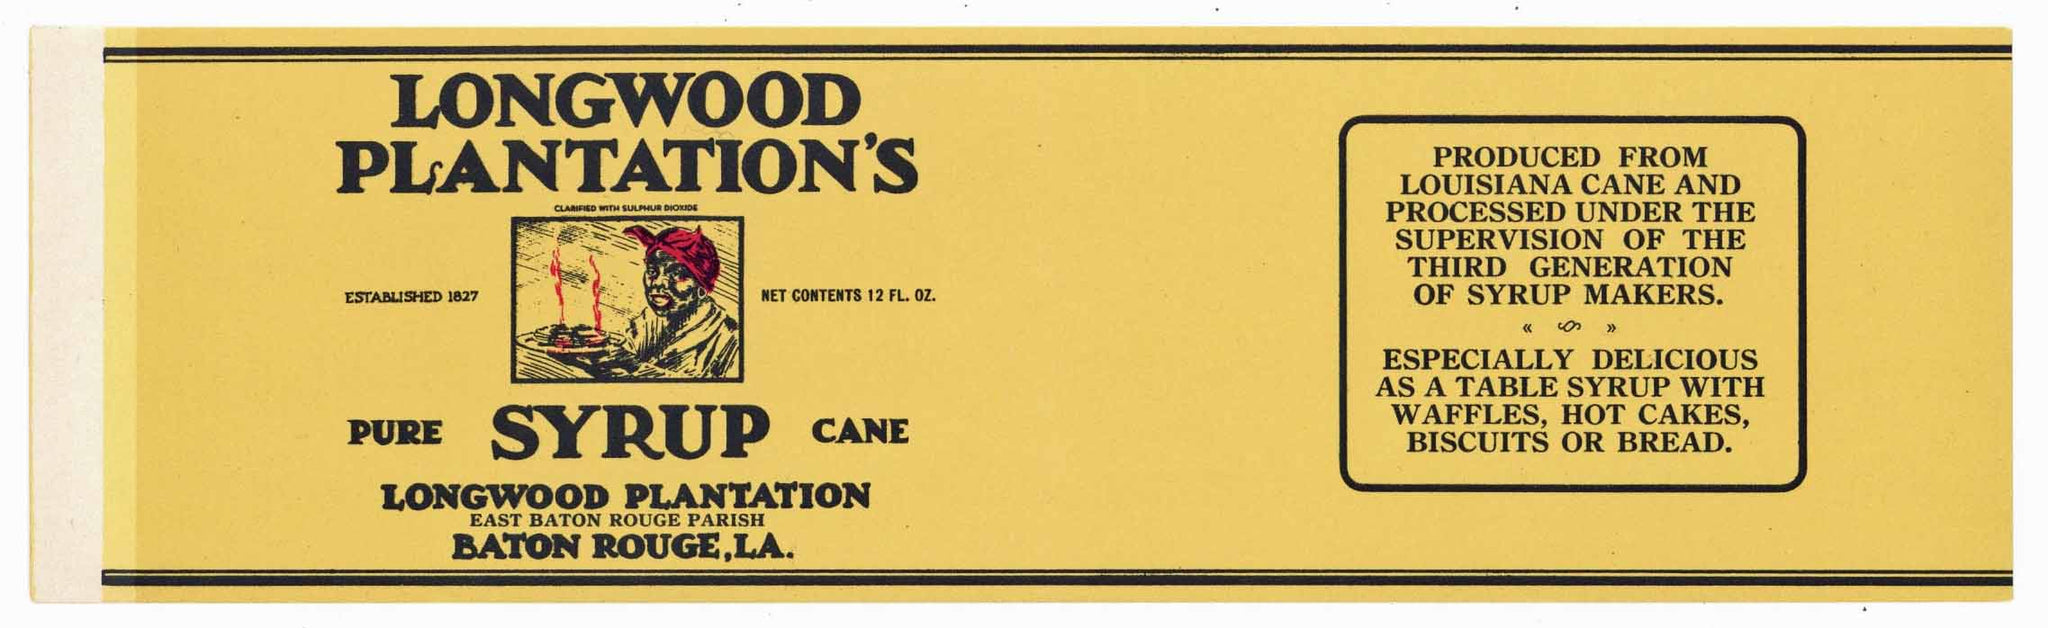 Longwood Plantations Brand Vintage Georgia Syrup Label, long